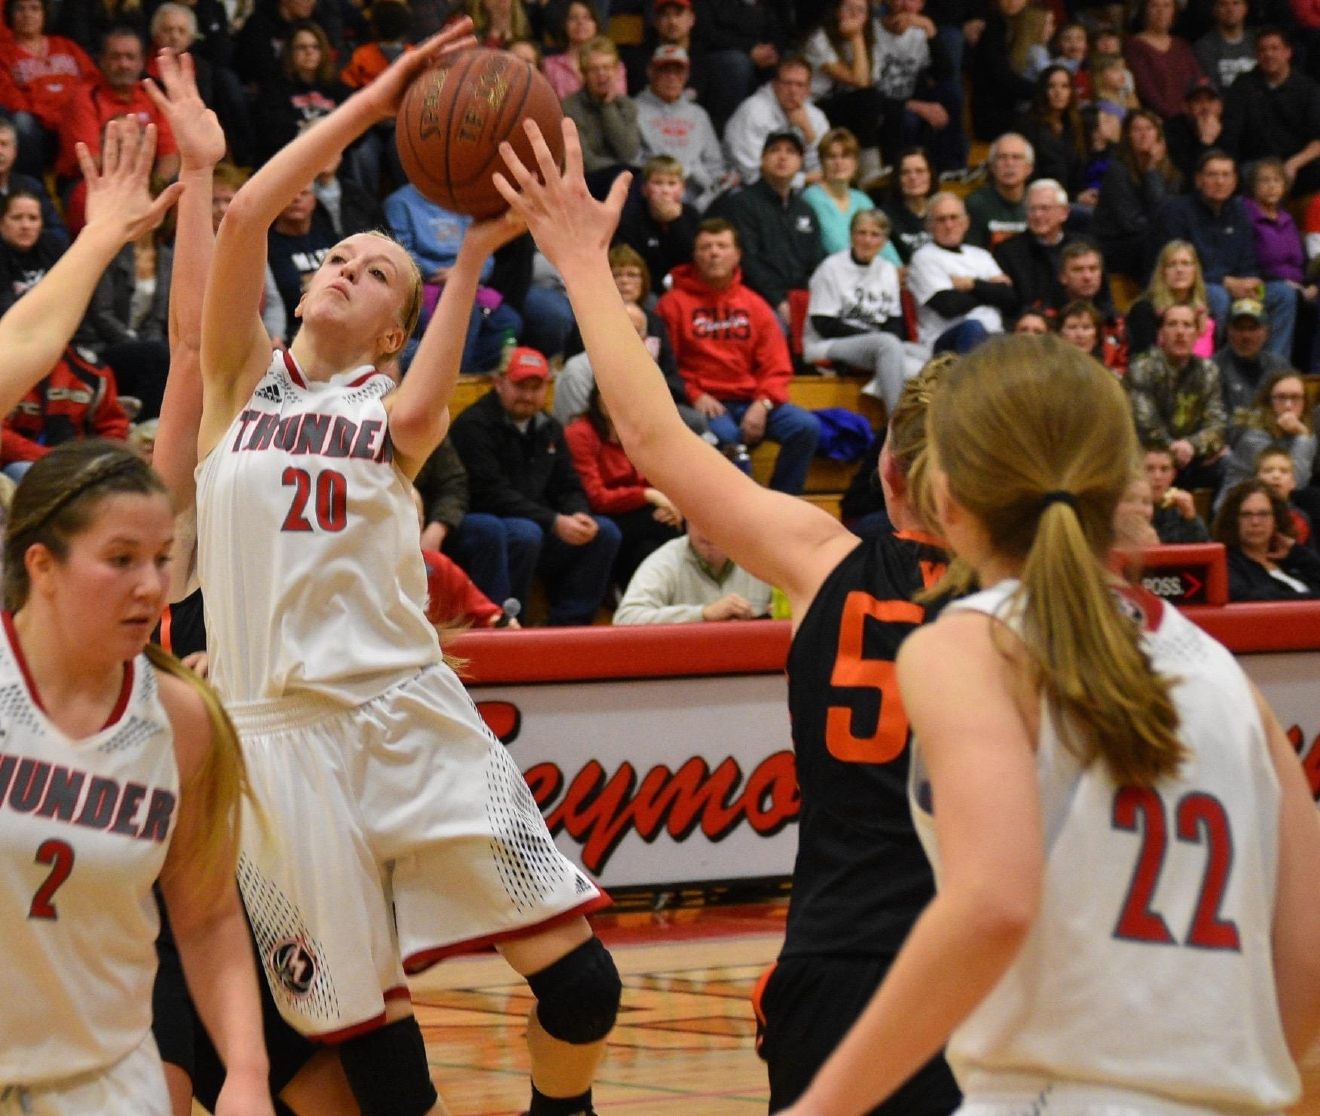 de pere girls View the schedule, scores, league standings, rankings, roster, articles and video highlights for the de pere redbirds girls basketball team on maxpreps.